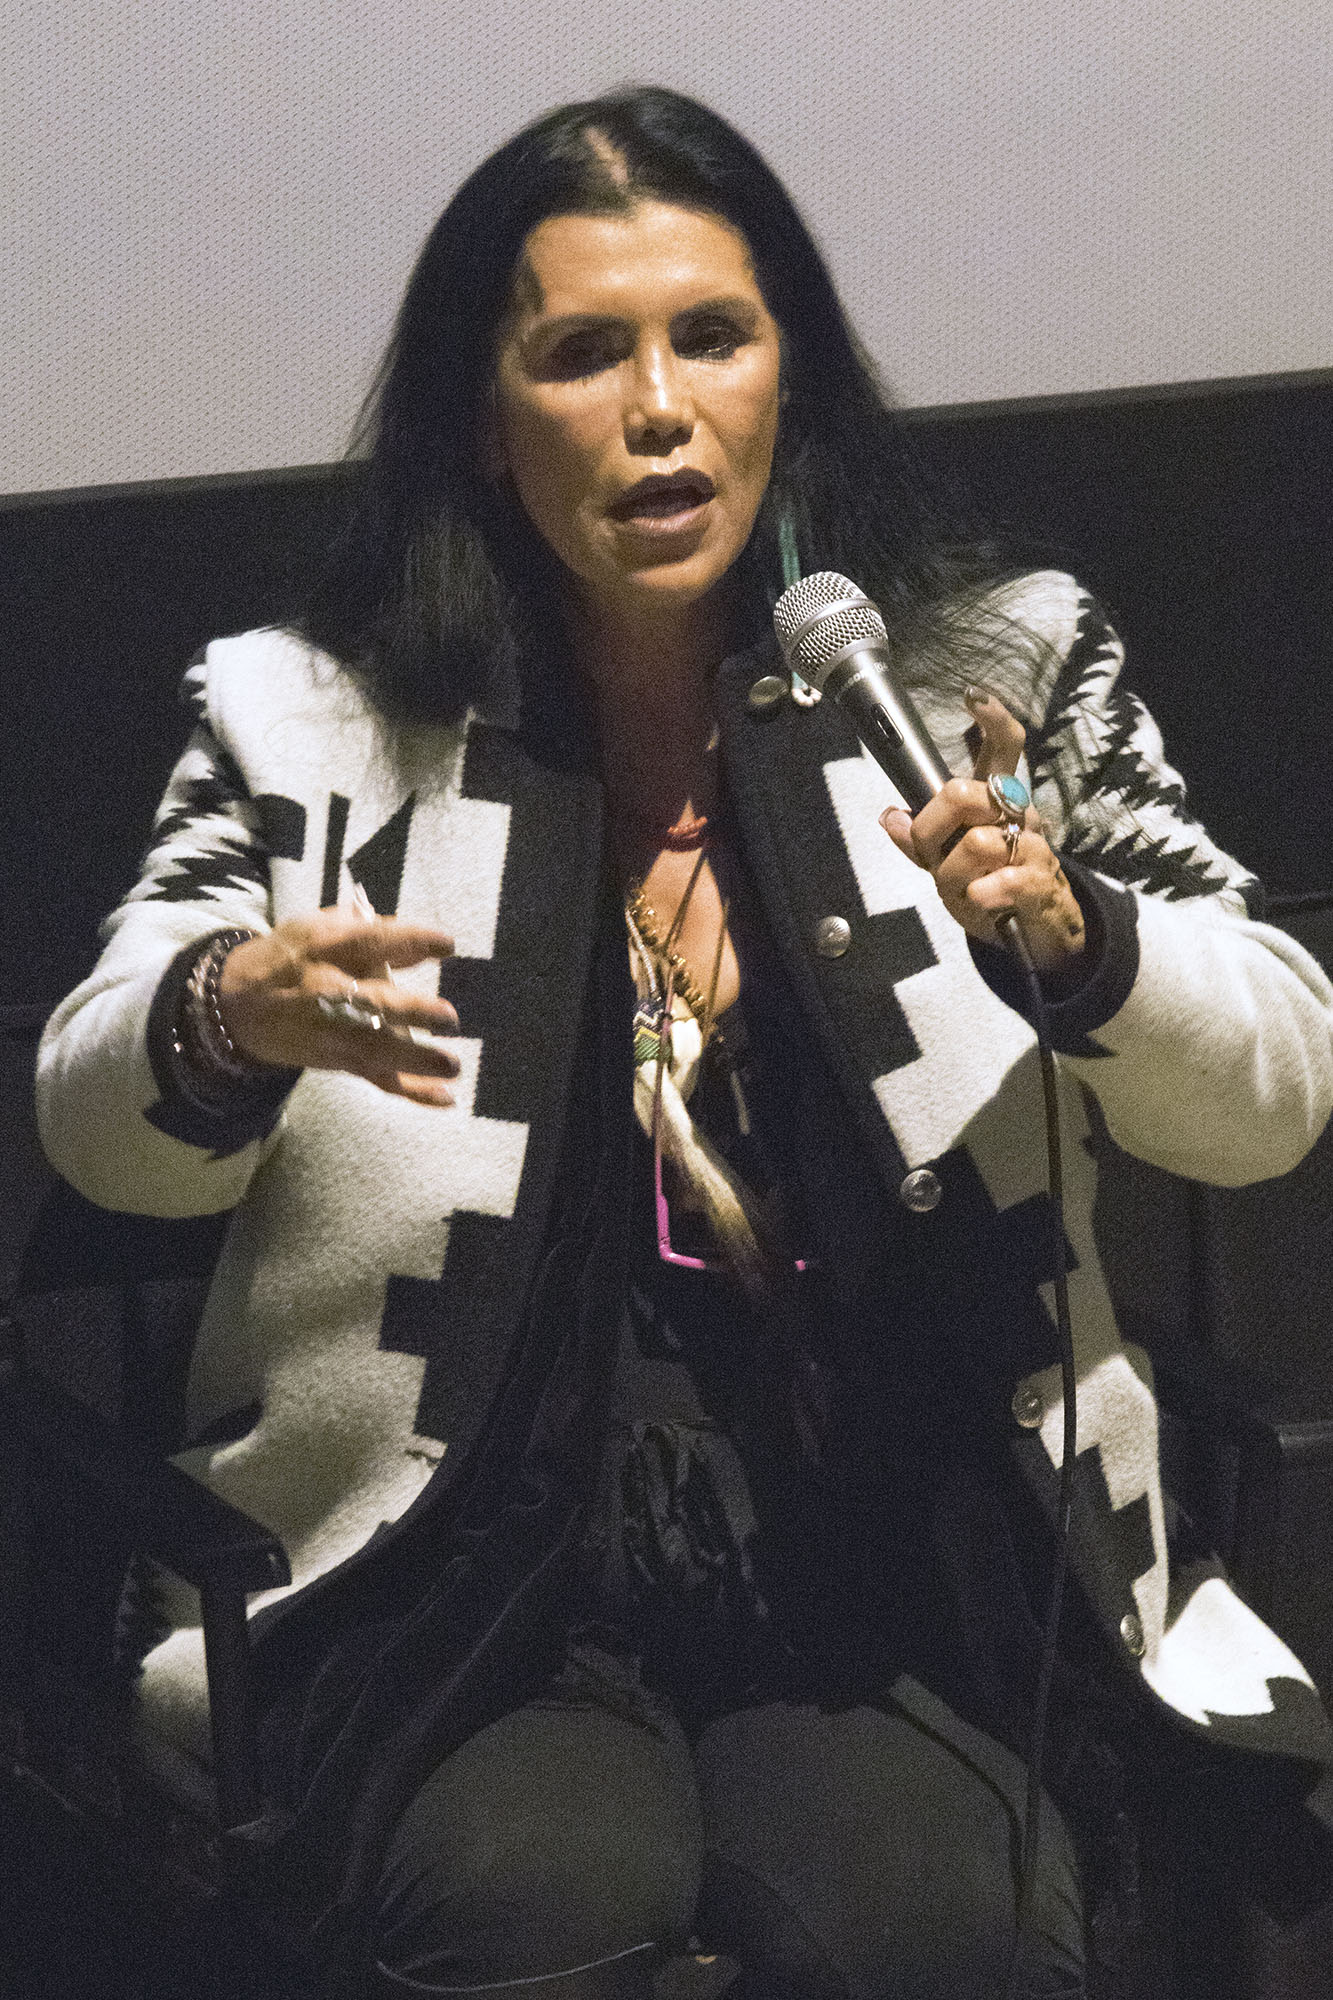 Red Nation Film Festival -NATIVES IN CHARGE OF THEIR NARRATIVE on Tuesday, November 14, 2017 at Laemele Monica Film Center Screening of Open Season (short) and Wind River. Red Nation Film Festival Founder - Joanelle Romero